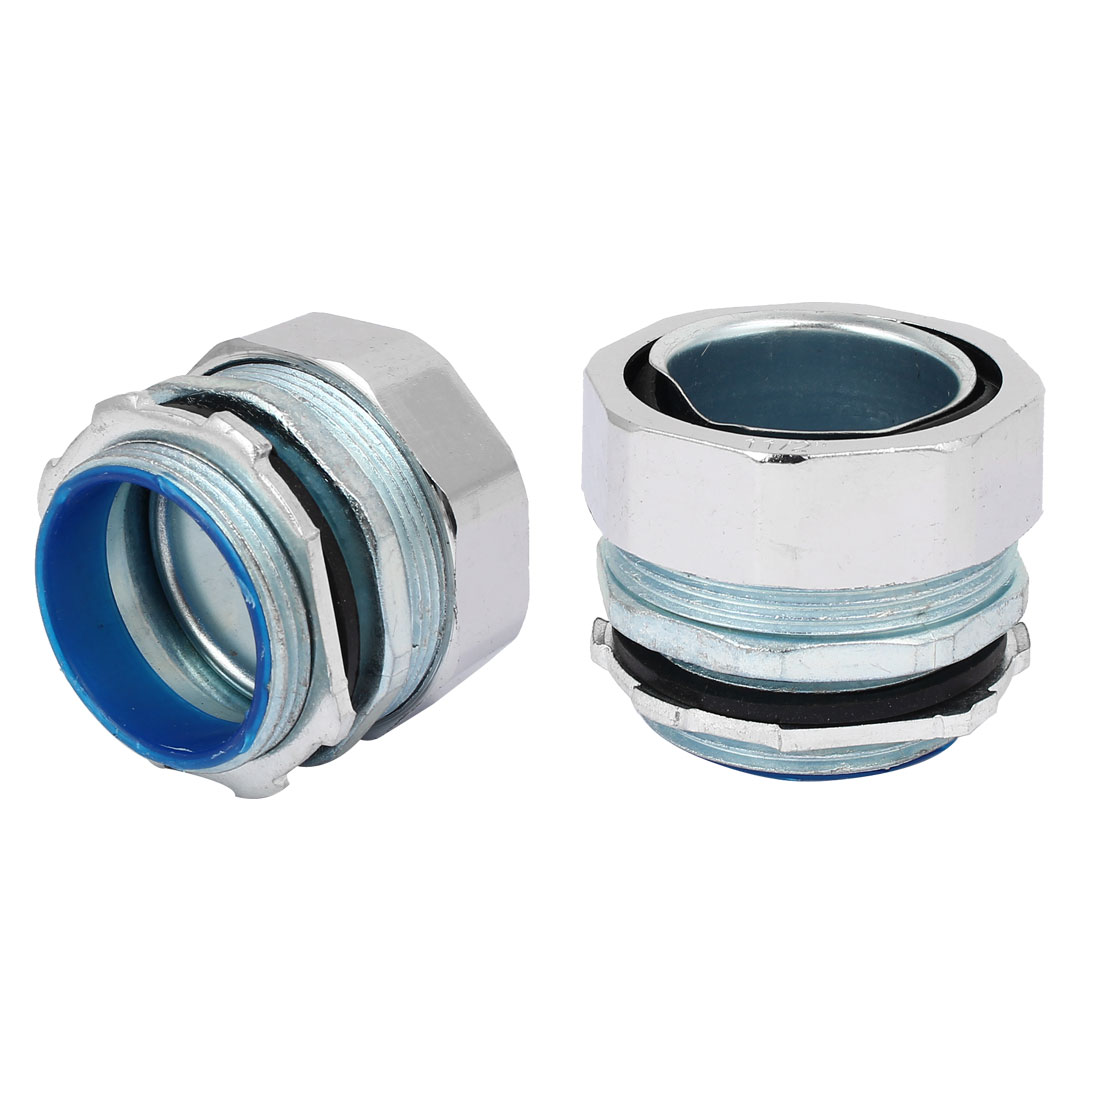 48mm 1-1/2BSP Male Thread Straight Pipe Fitting Tube Coupler Silver Tone 2pcs